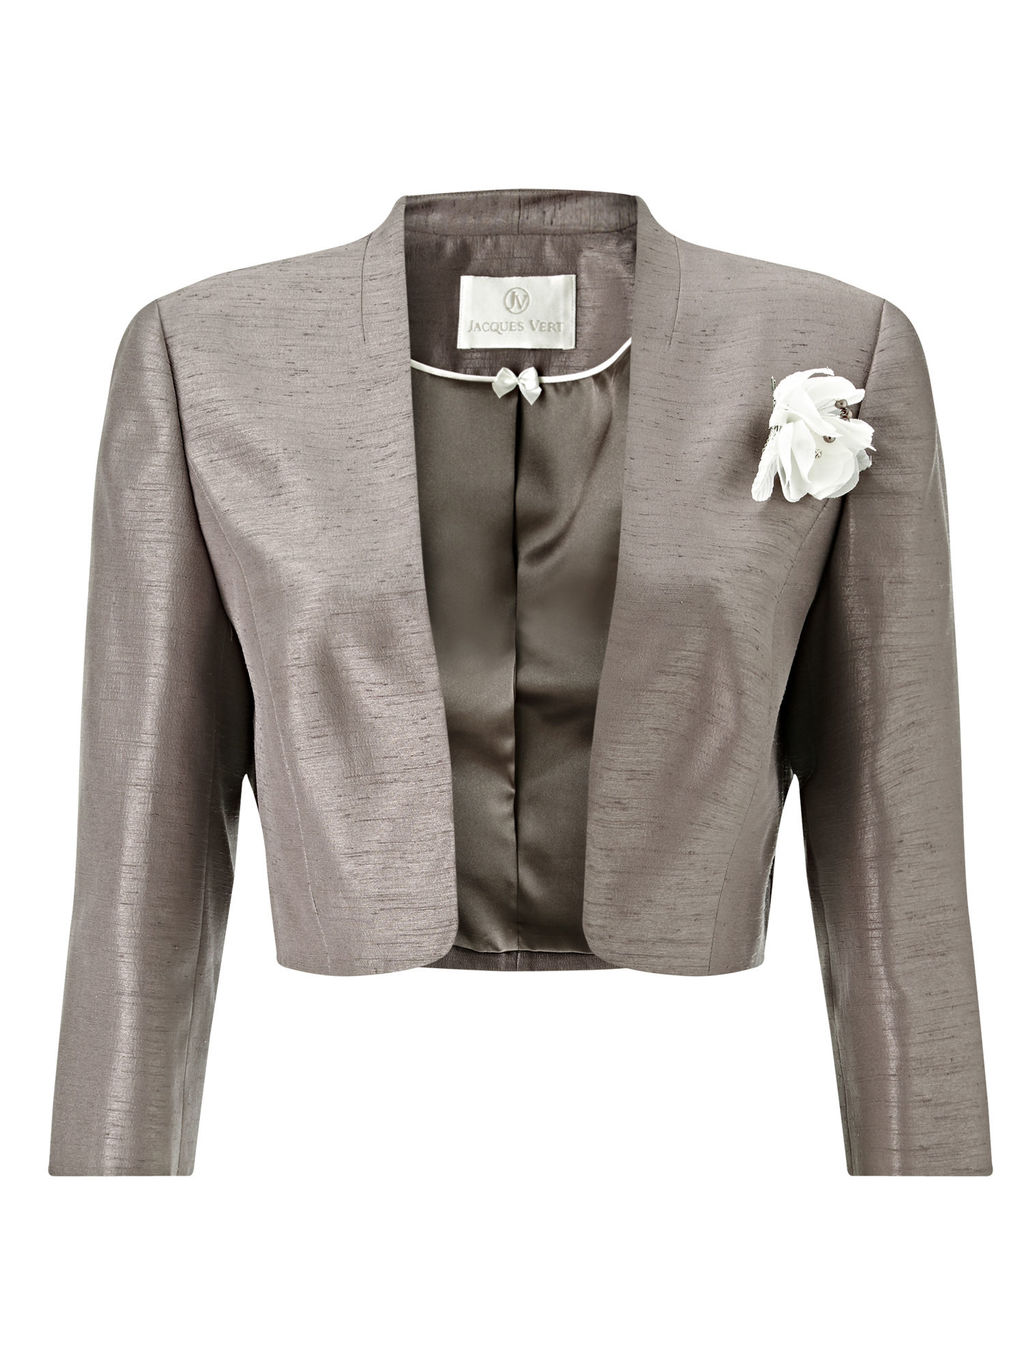 Stand Collar Bolero, Taupe - pattern: plain; style: bolero/shrug; collar: round collar/collarless; secondary colour: ivory/cream; predominant colour: taupe; fit: tailored/fitted; fibres: polyester/polyamide - 100%; occasions: occasion; sleeve length: 3/4 length; sleeve style: standard; texture group: structured shiny - satin/tafetta/silk etc.; collar break: low/open; pattern type: fabric; embellishment: corsage; length: cropped; season: s/s 2016; wardrobe: event